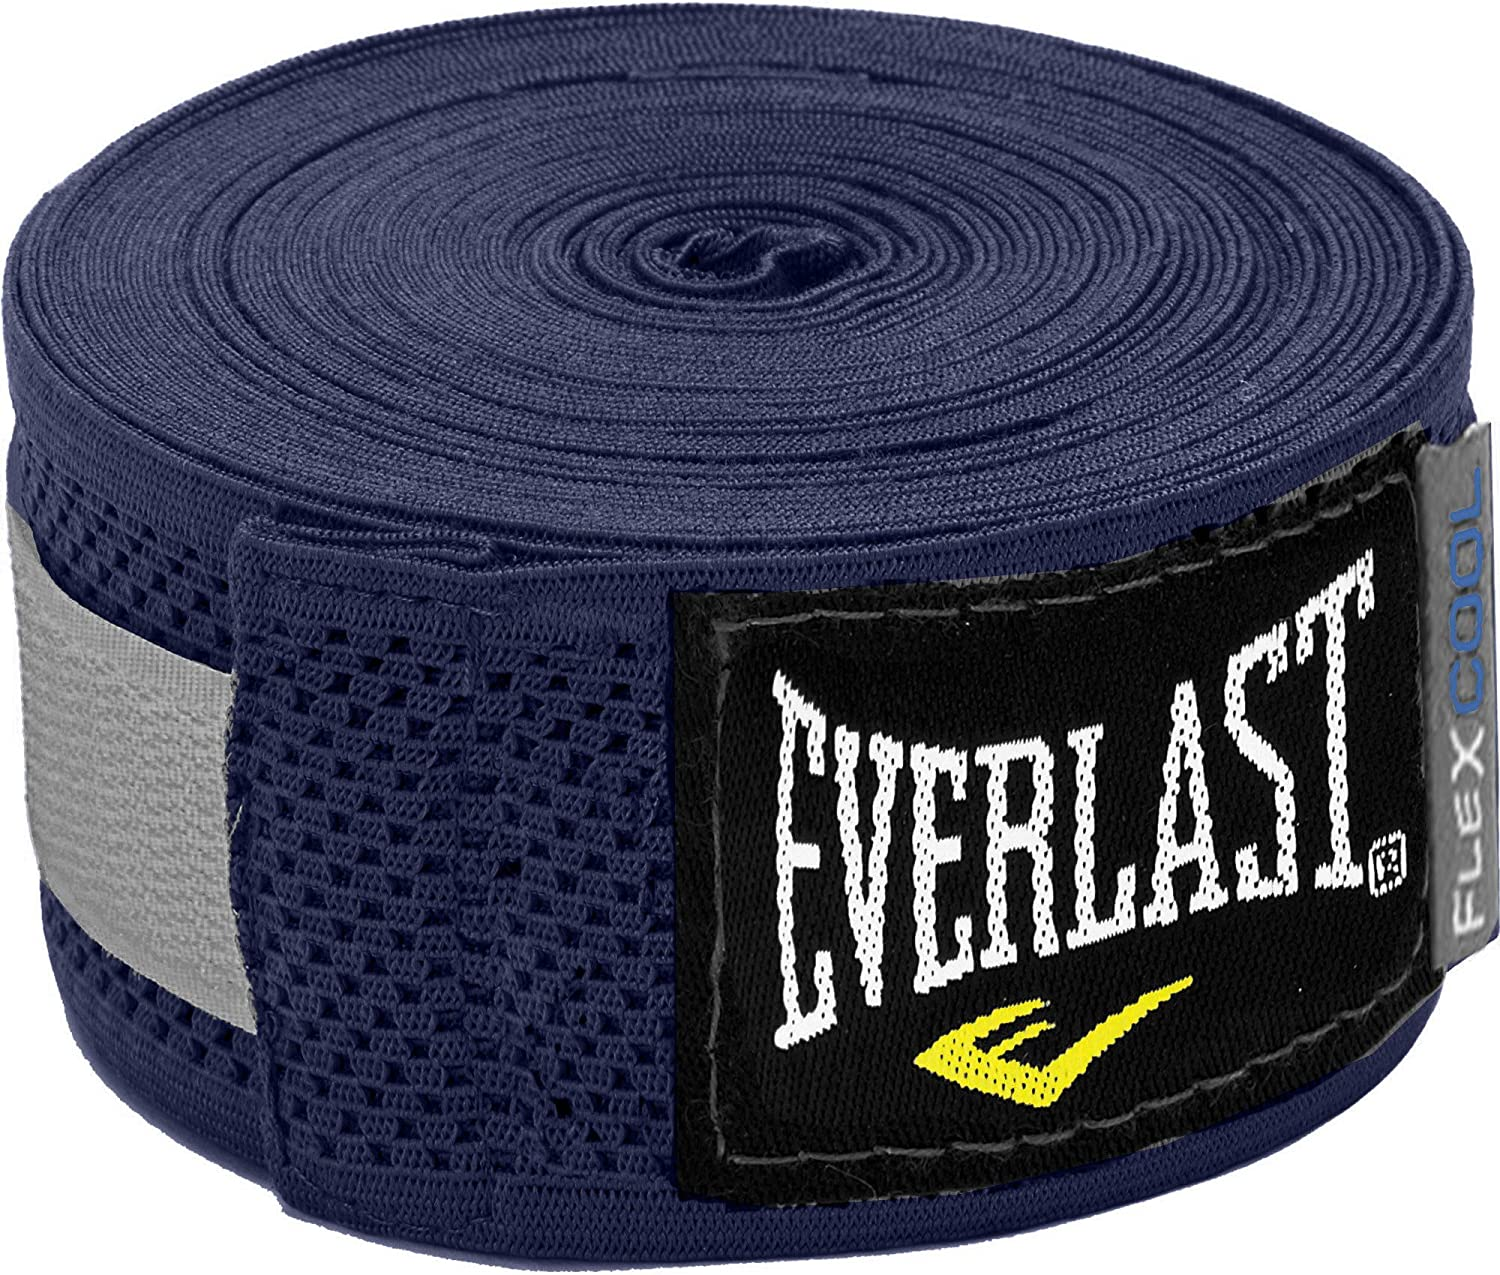 Everlast Flexcool Handwraps